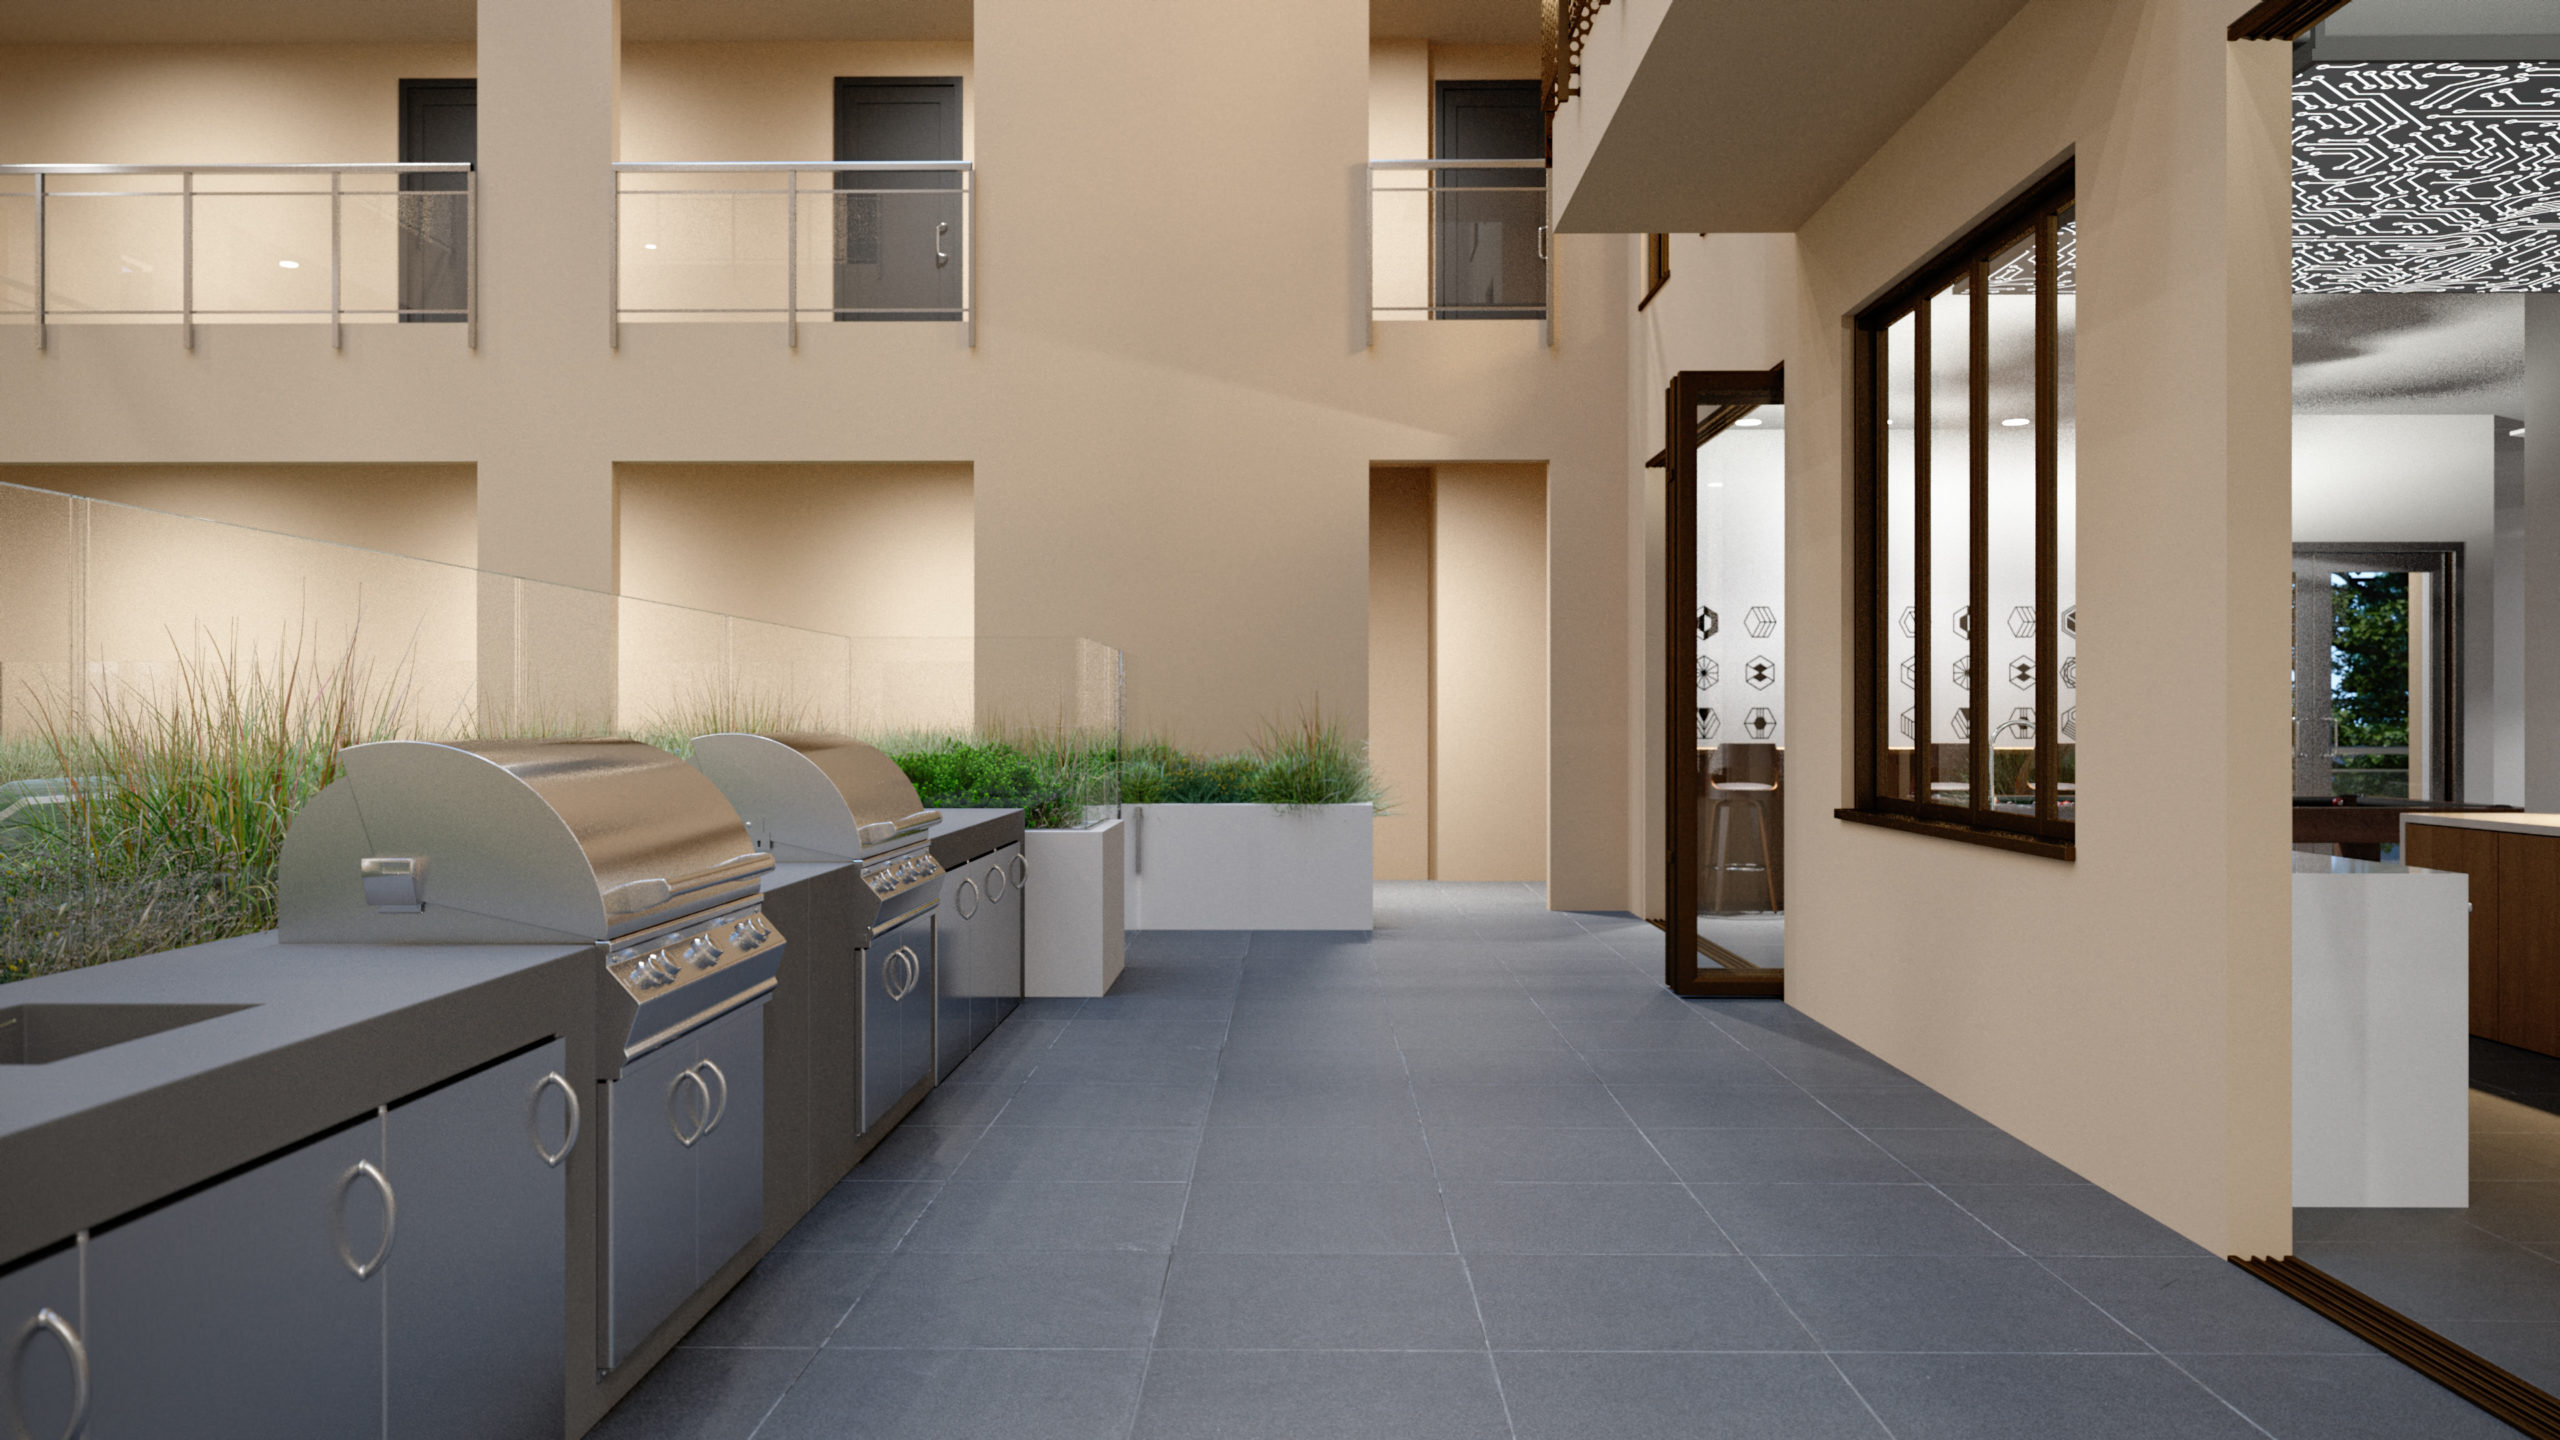 outdoor patio area with shading and grills for cooking, stainless steel appliances, and sinks